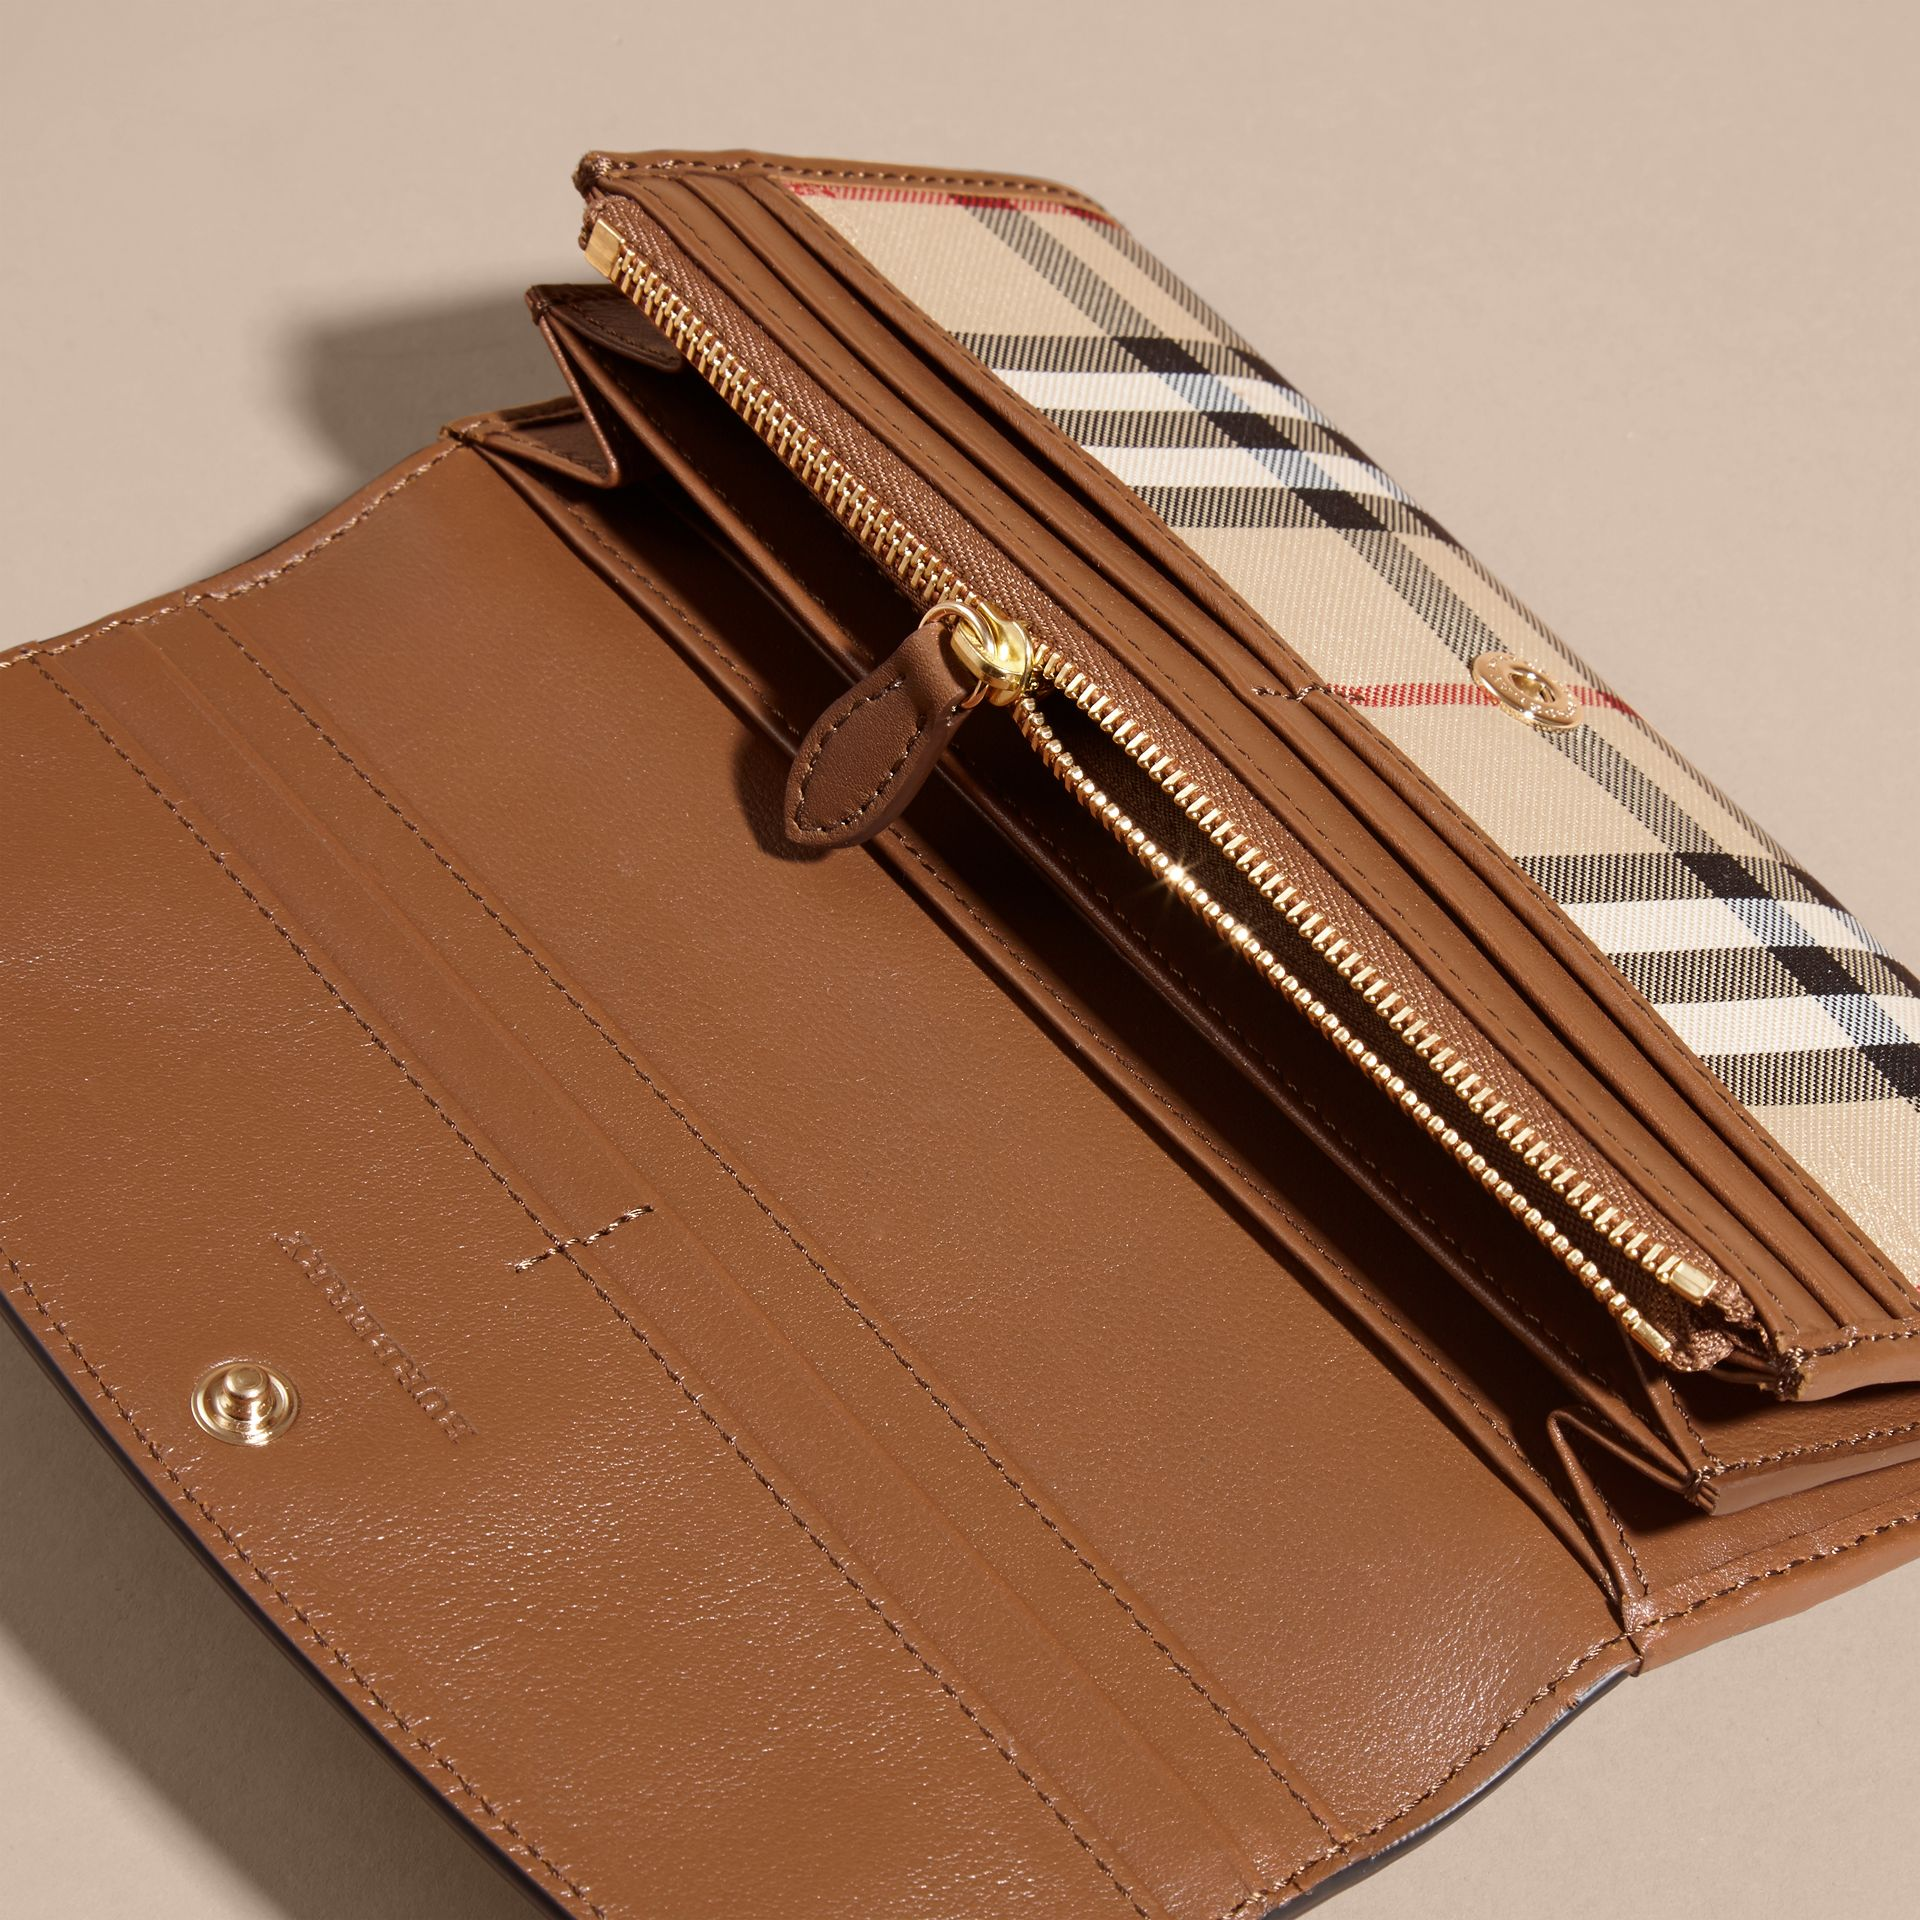 Horseferry Check and Leather Continental Wallet in Tan - Women | Burberry - gallery image 5